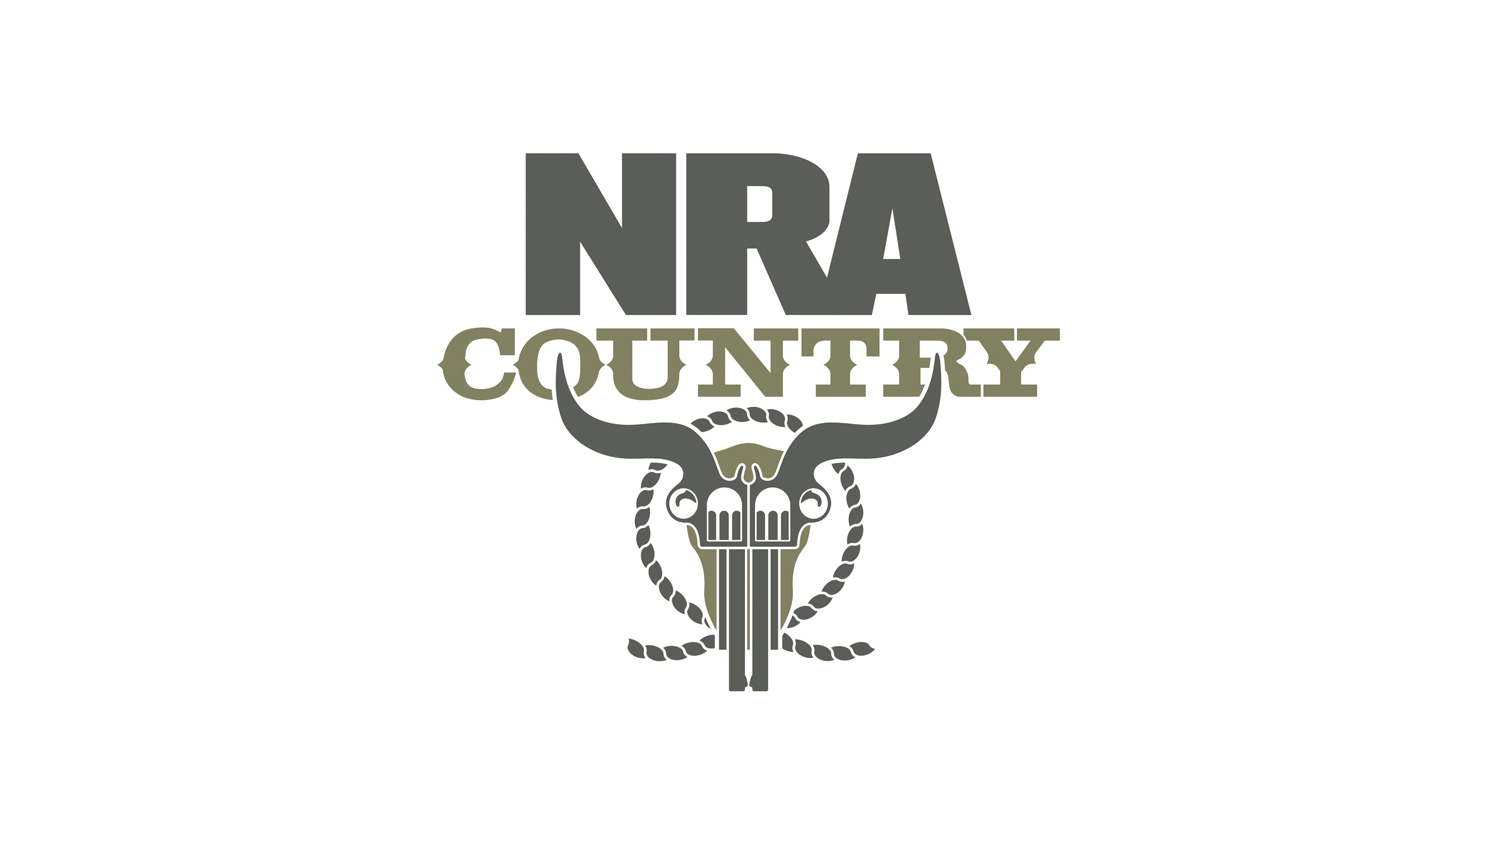 Get your 2019 NRA Country Concert Tickets Now!